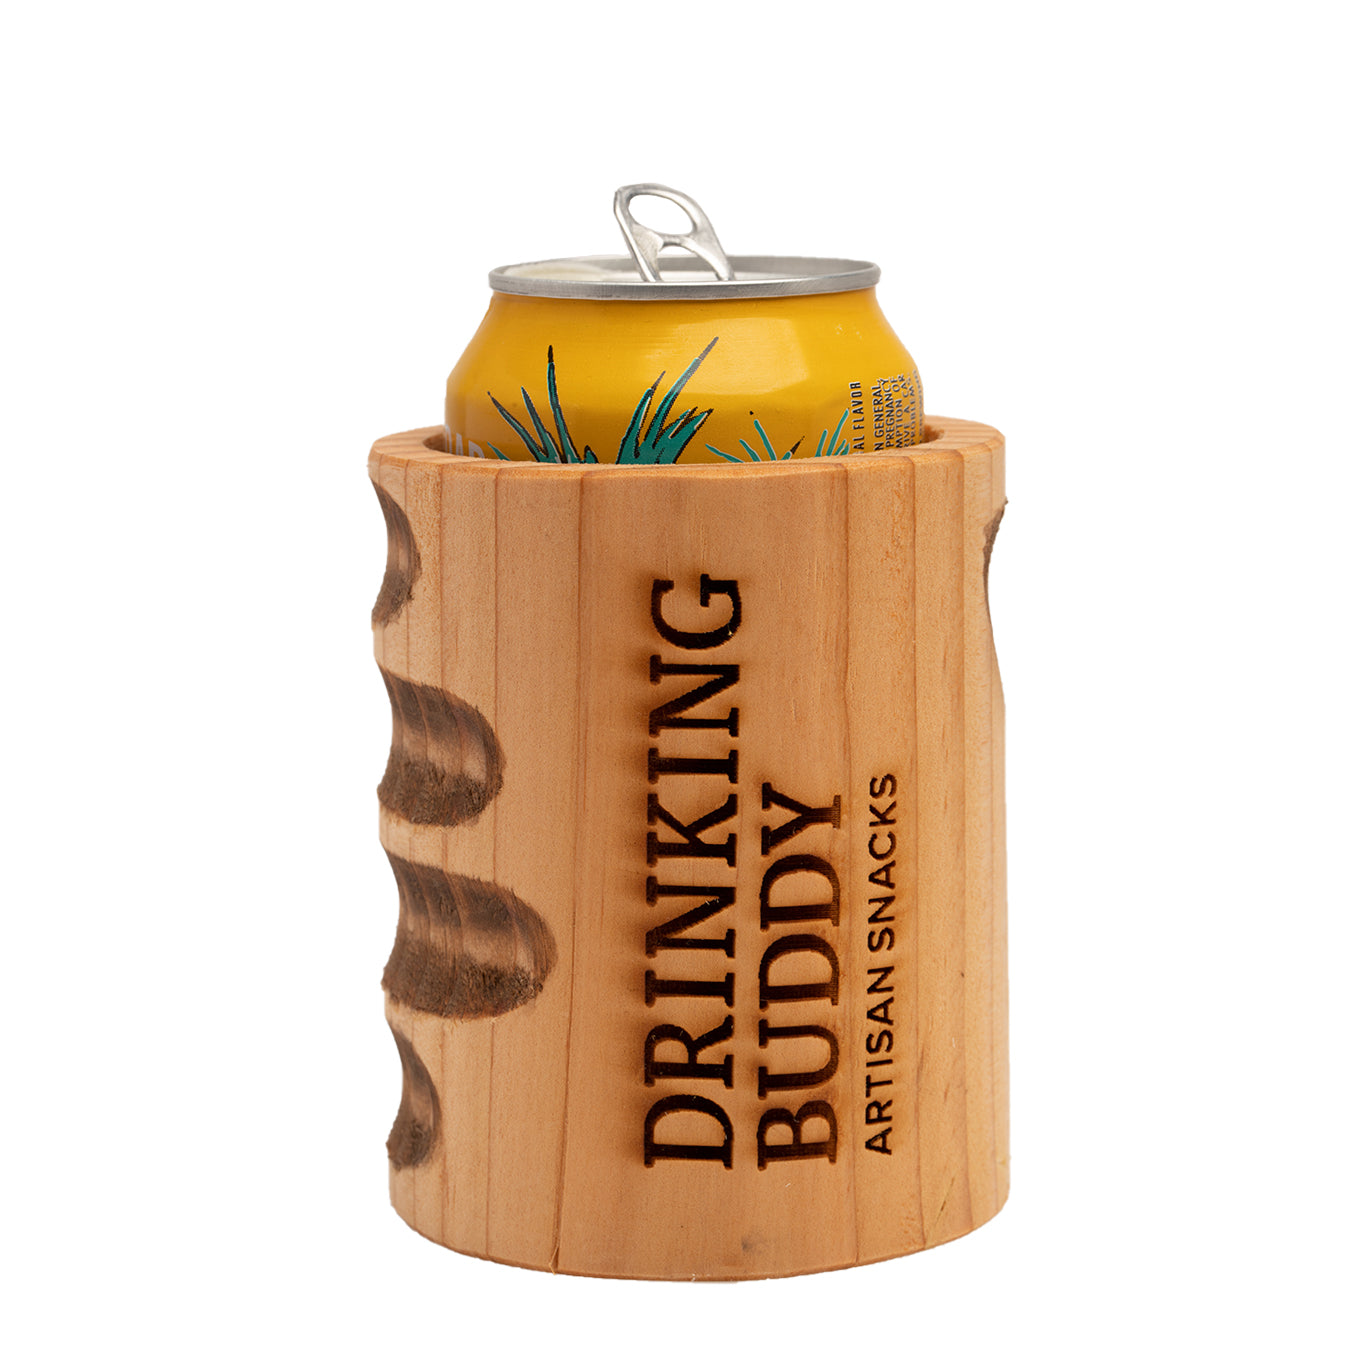 Drinking Buddy Wooden Beverage Insulator